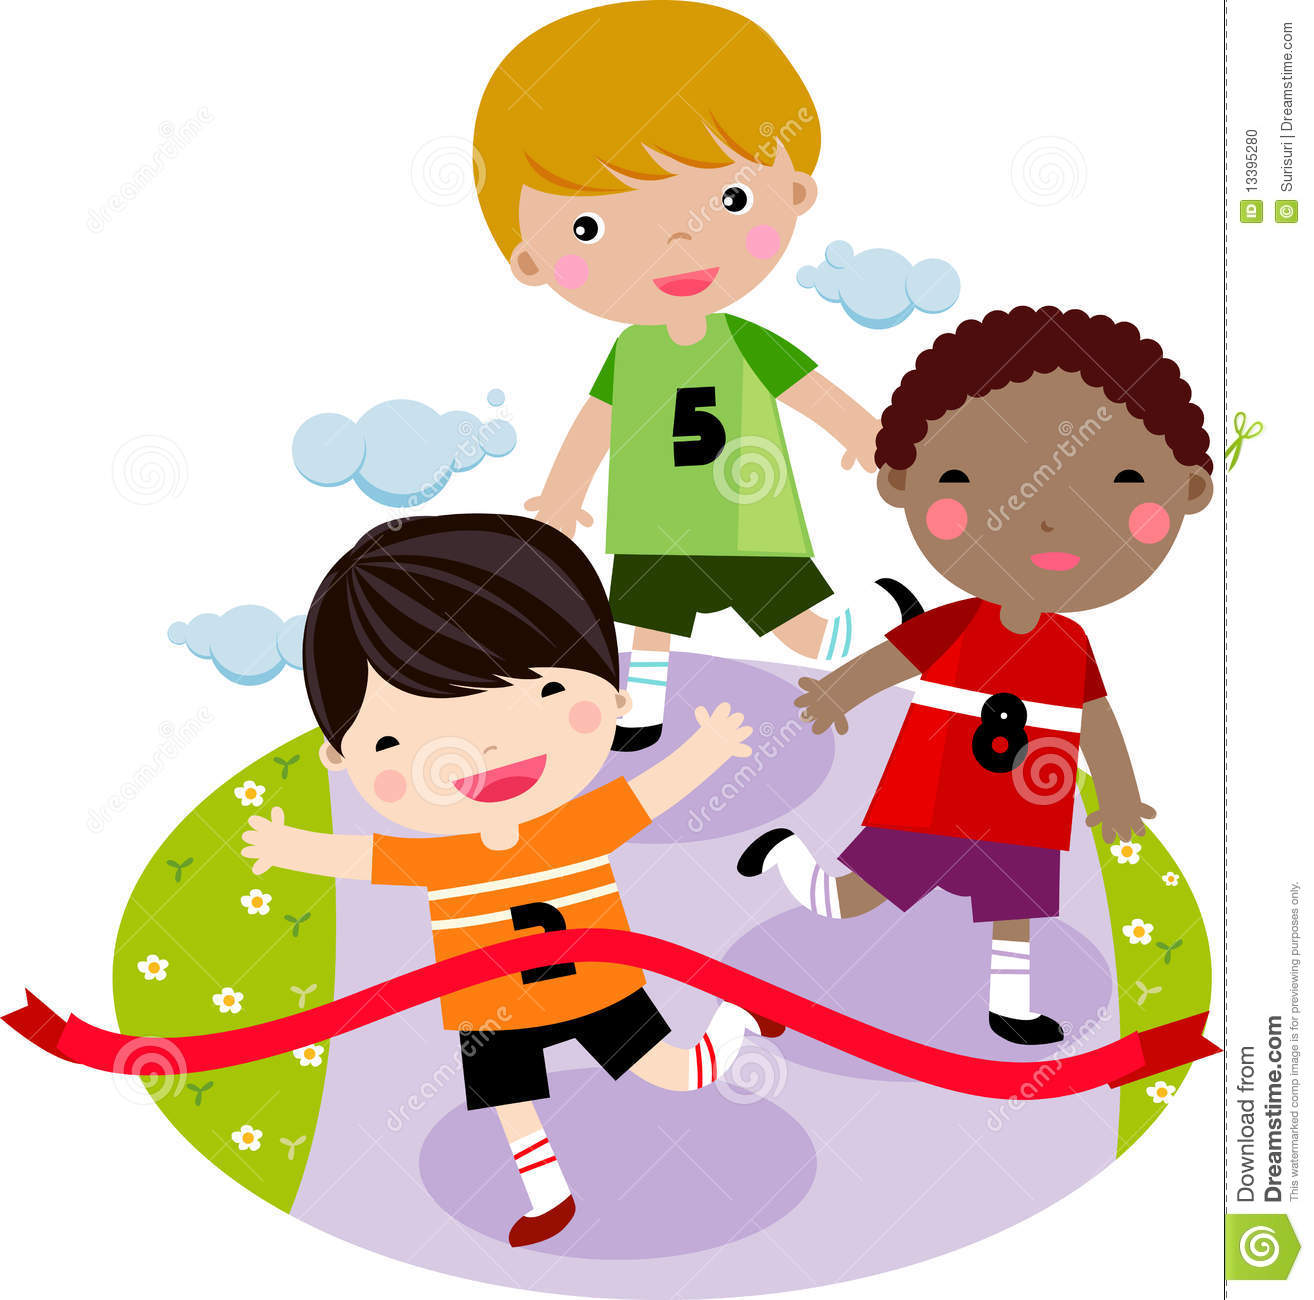 More Similar Stock Images Of   Children Running Together In A Race